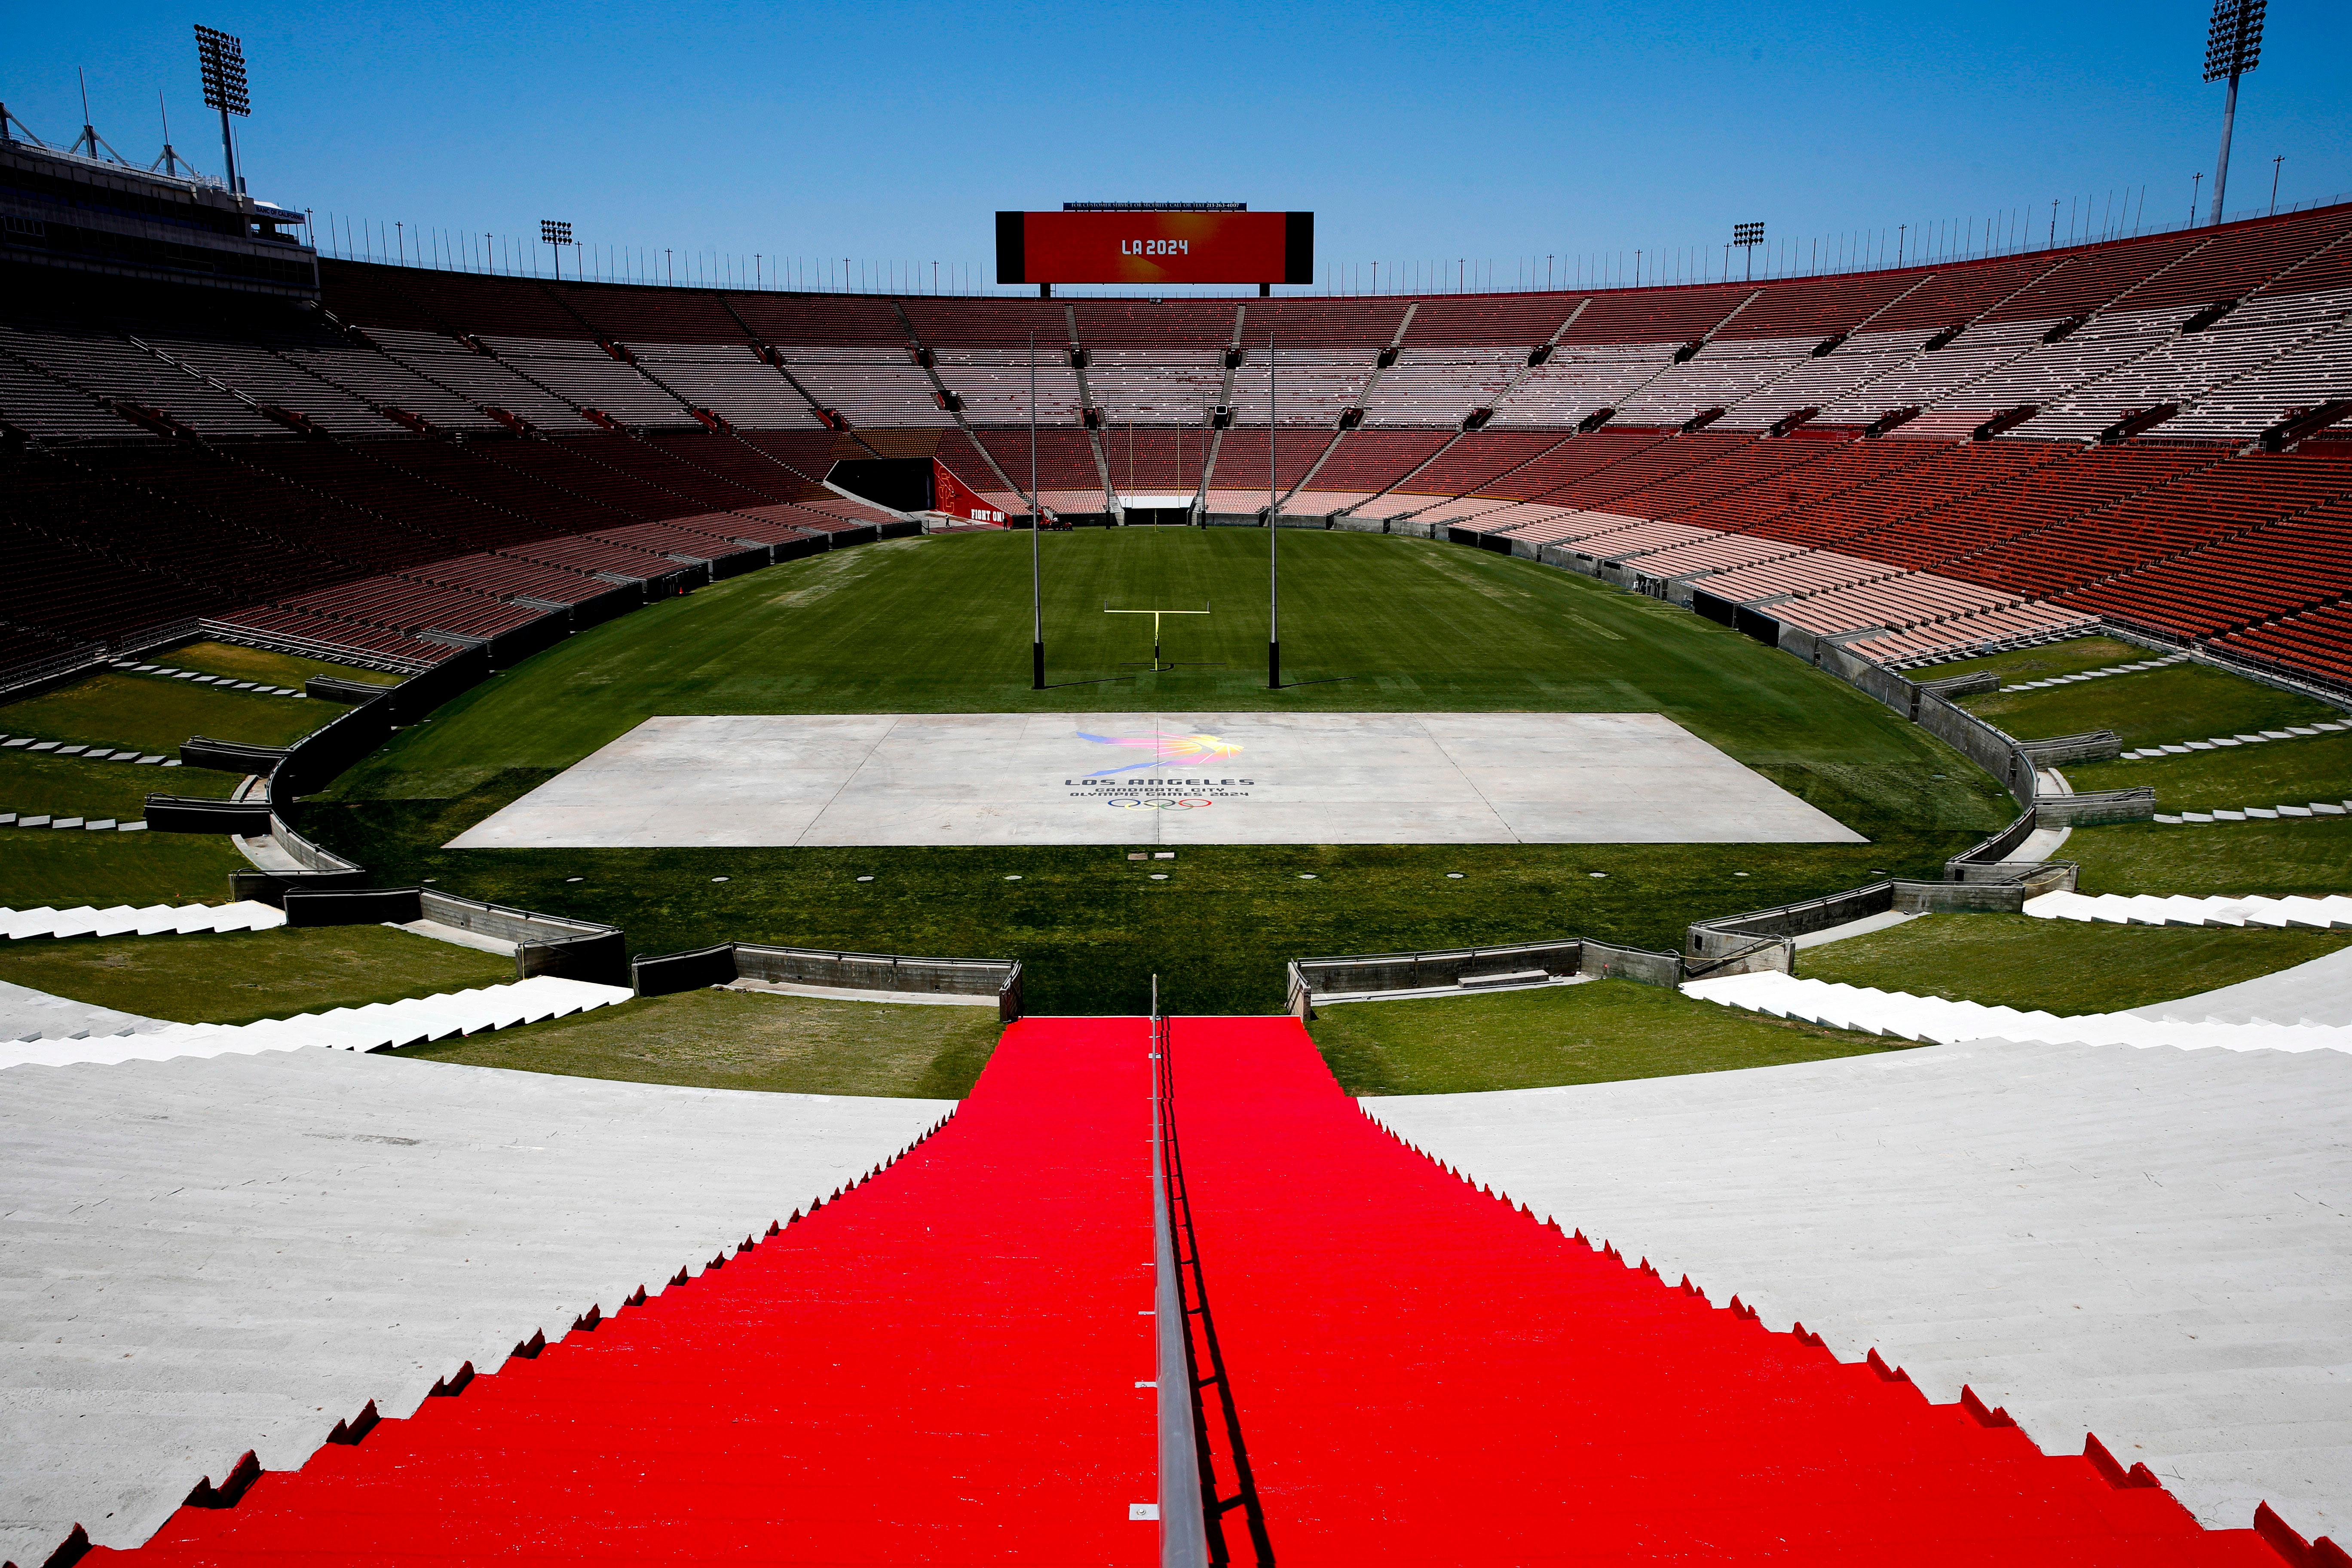 FILE - In this May 11, 2017, file photo, Los Angeles Memorial Coliseum, the venue proposed for Olympic opening and closing ceremonies and track and field events, stands in Los Angeles. (AP Photo/Jae C. Hong, File)